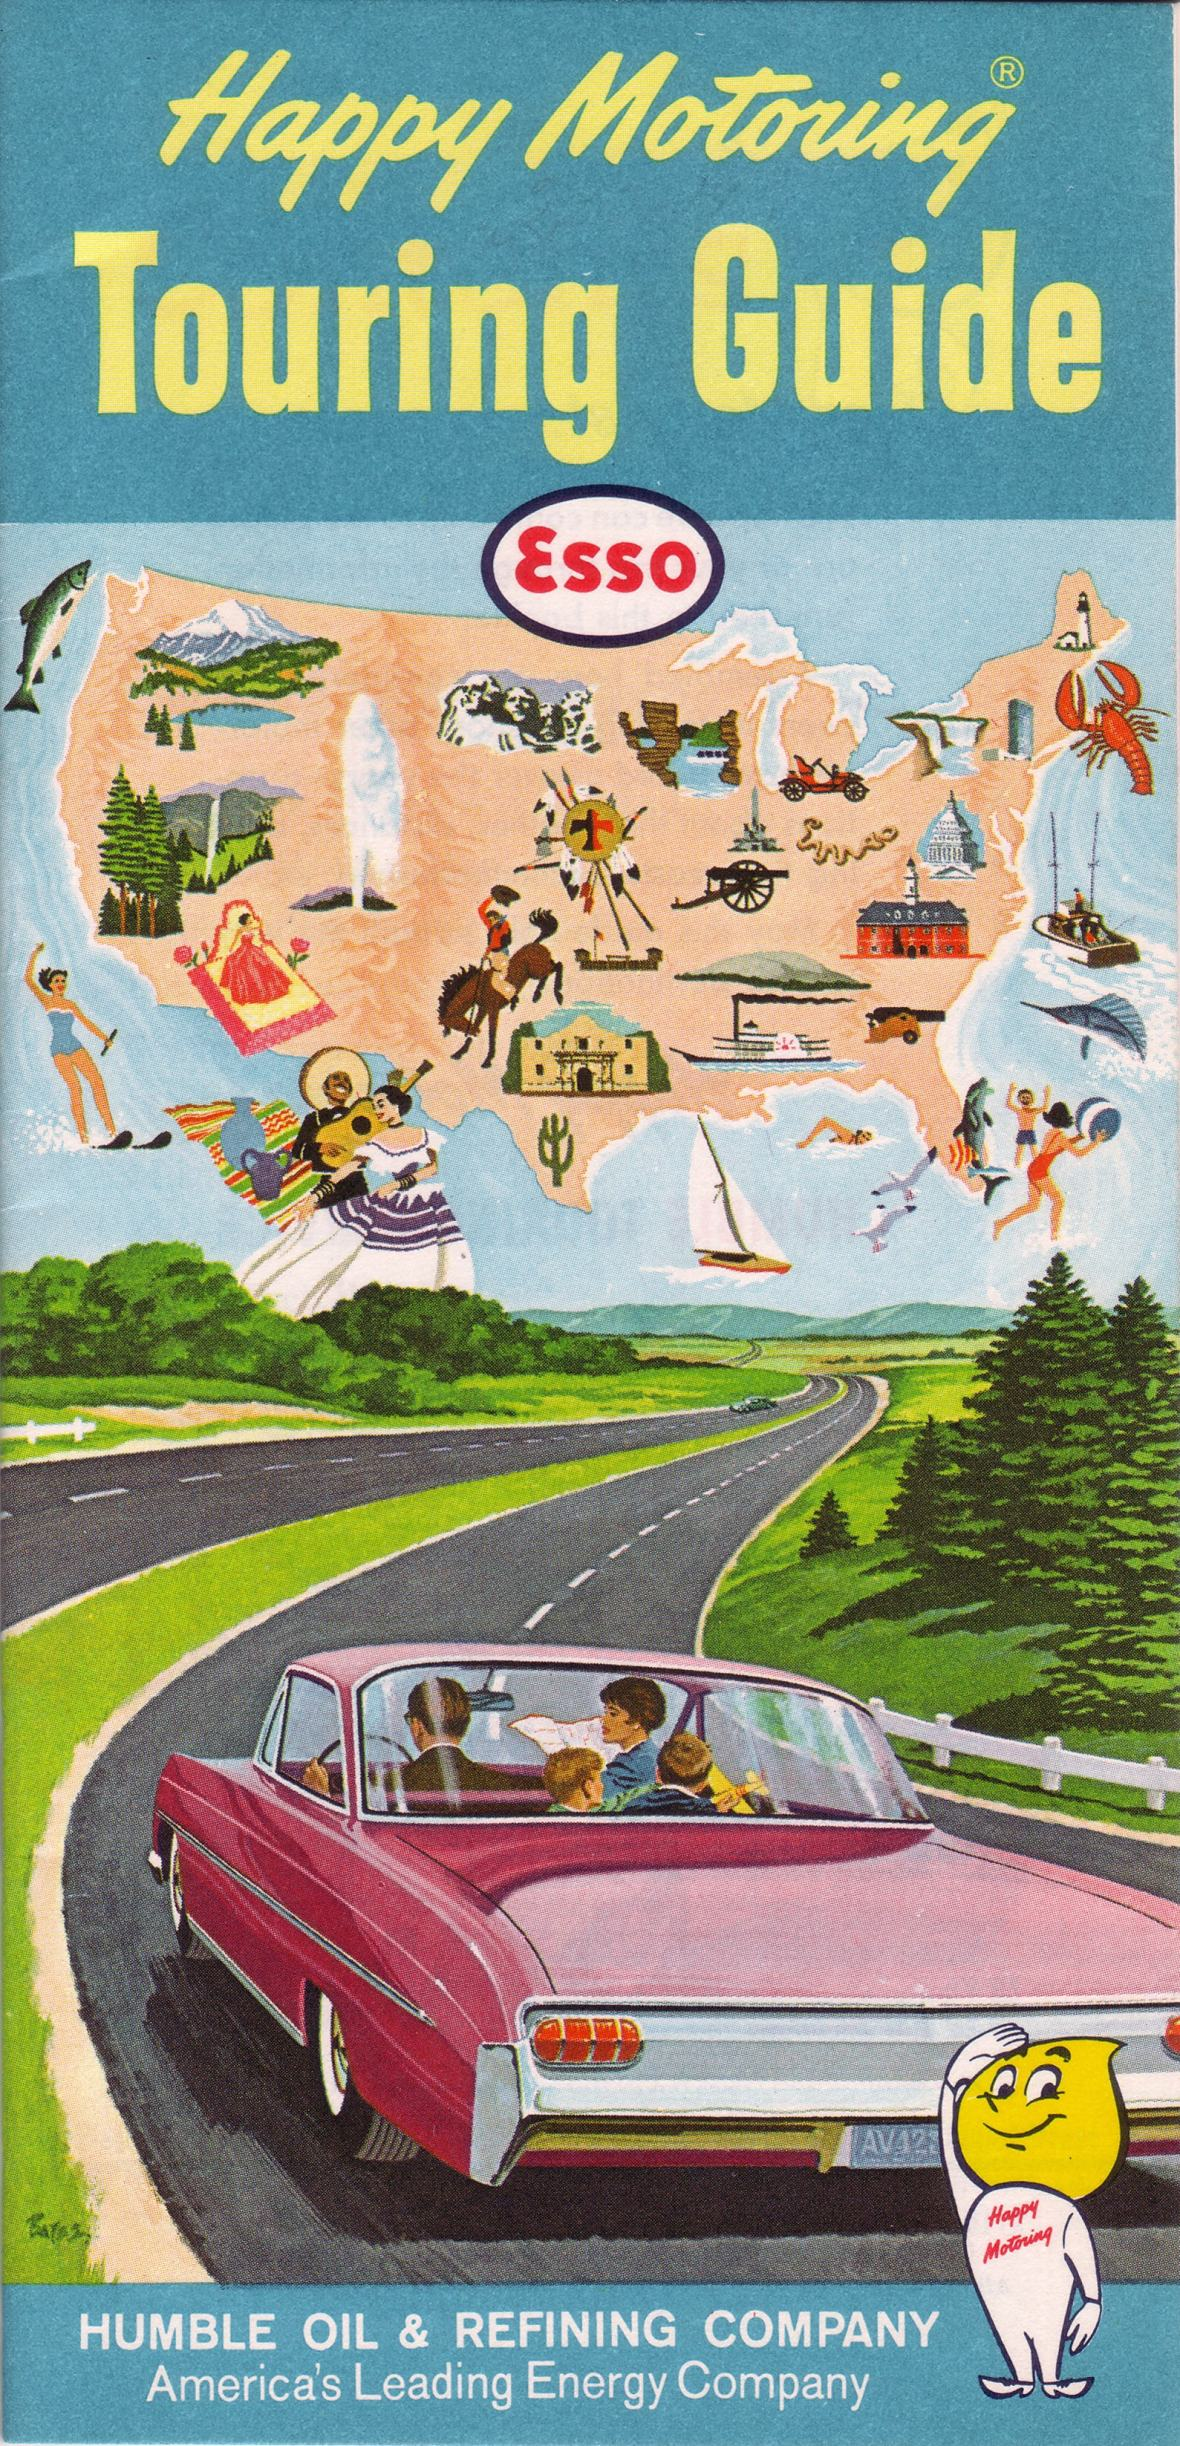 Esso Touring Guide front cover - 1964